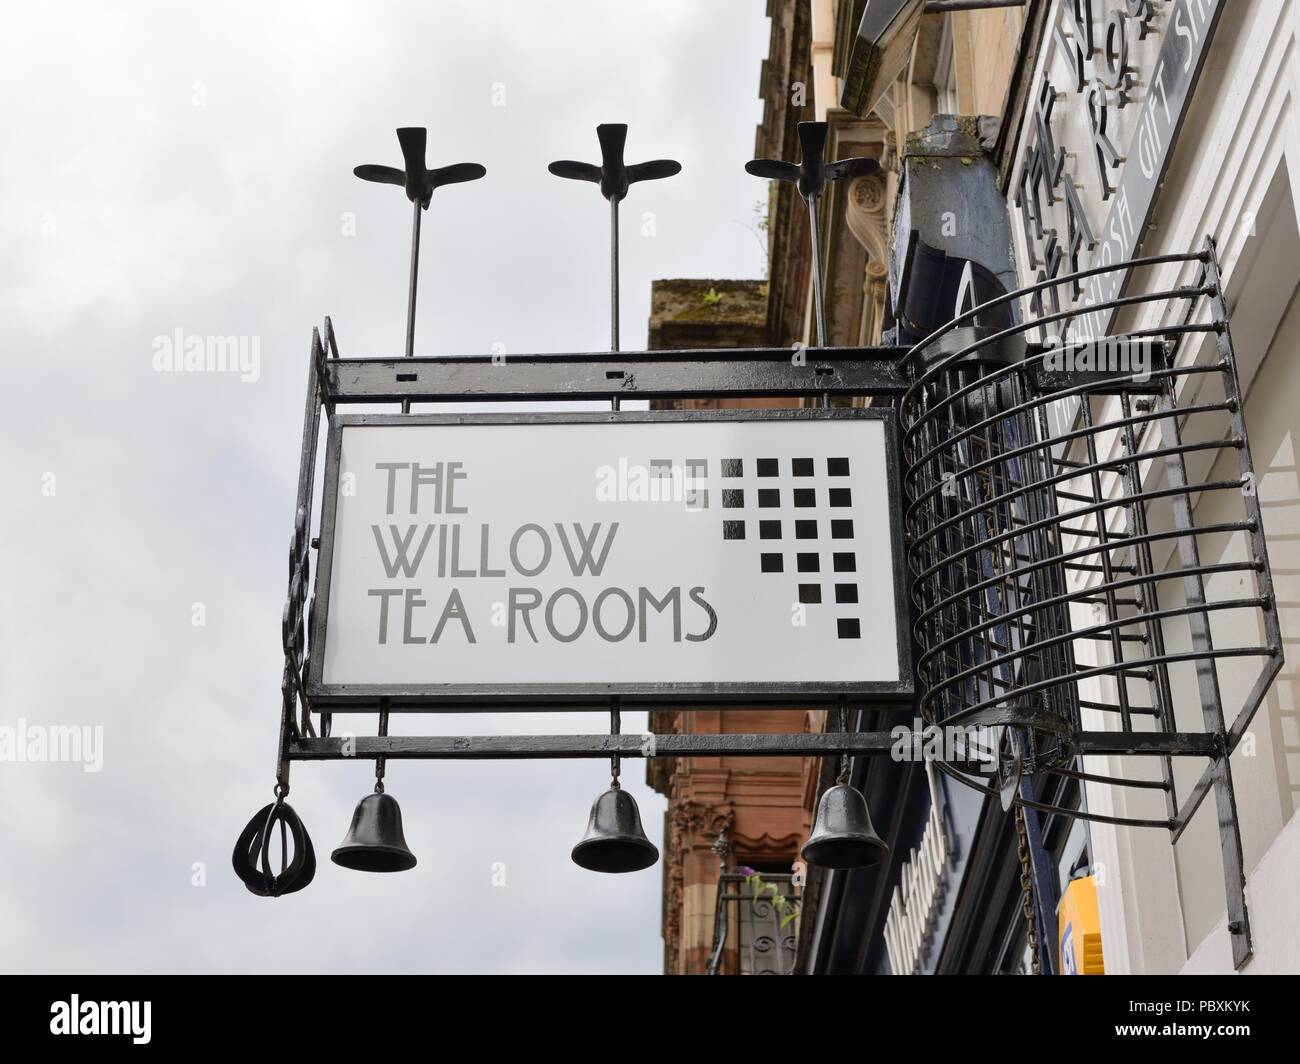 A decorative sign above the entrance for the Willow Tea Rooms in Buchanan Street, Glasgow, Scotland, UK Stock Photo